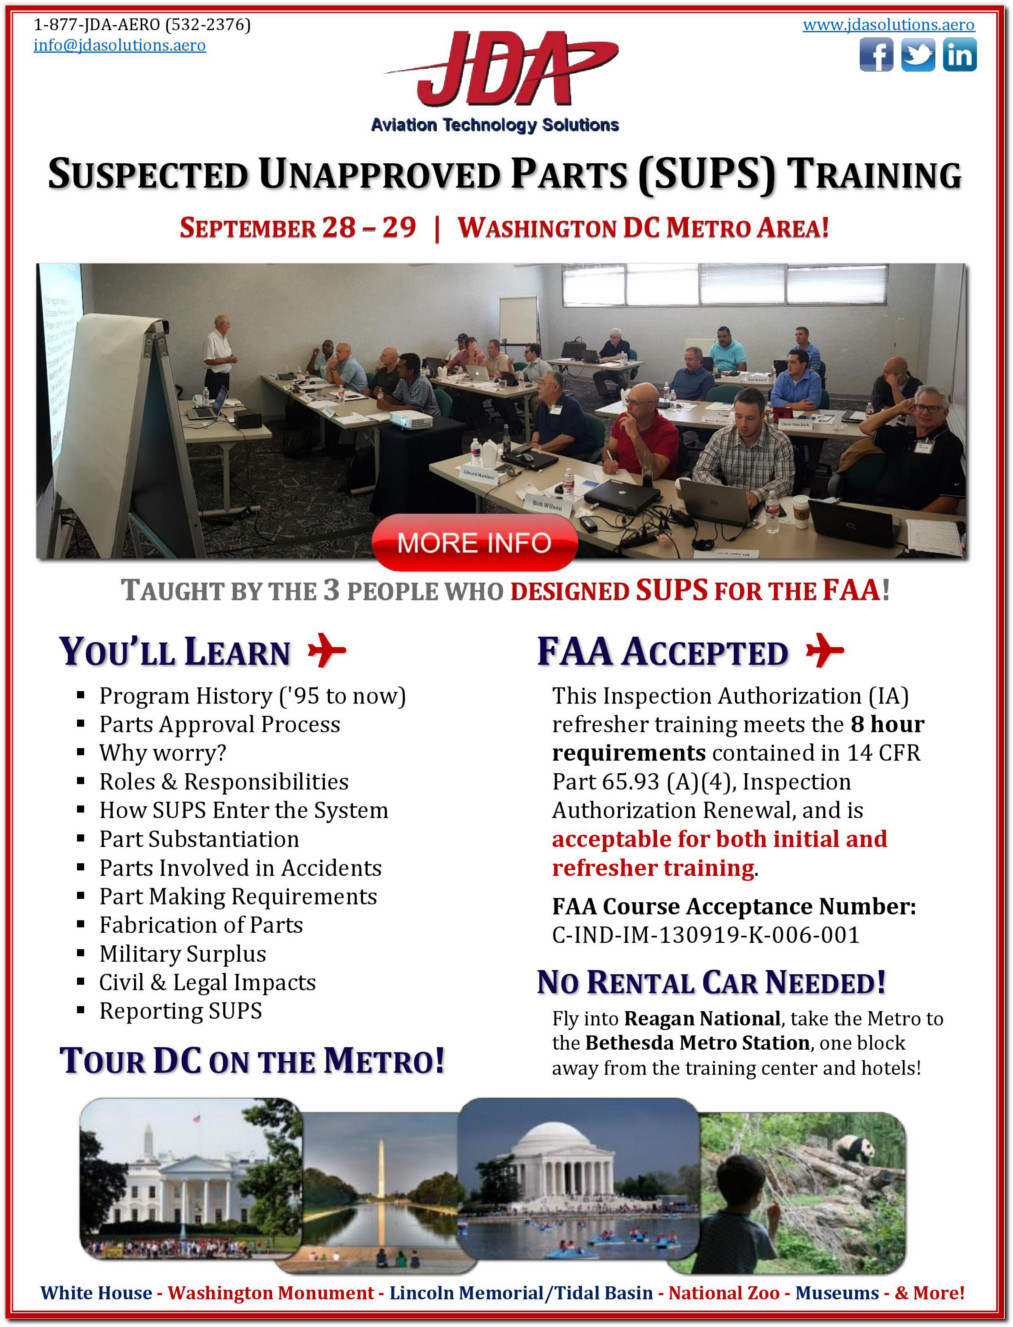 Suspected Unapproved Parts (SUPs) Training